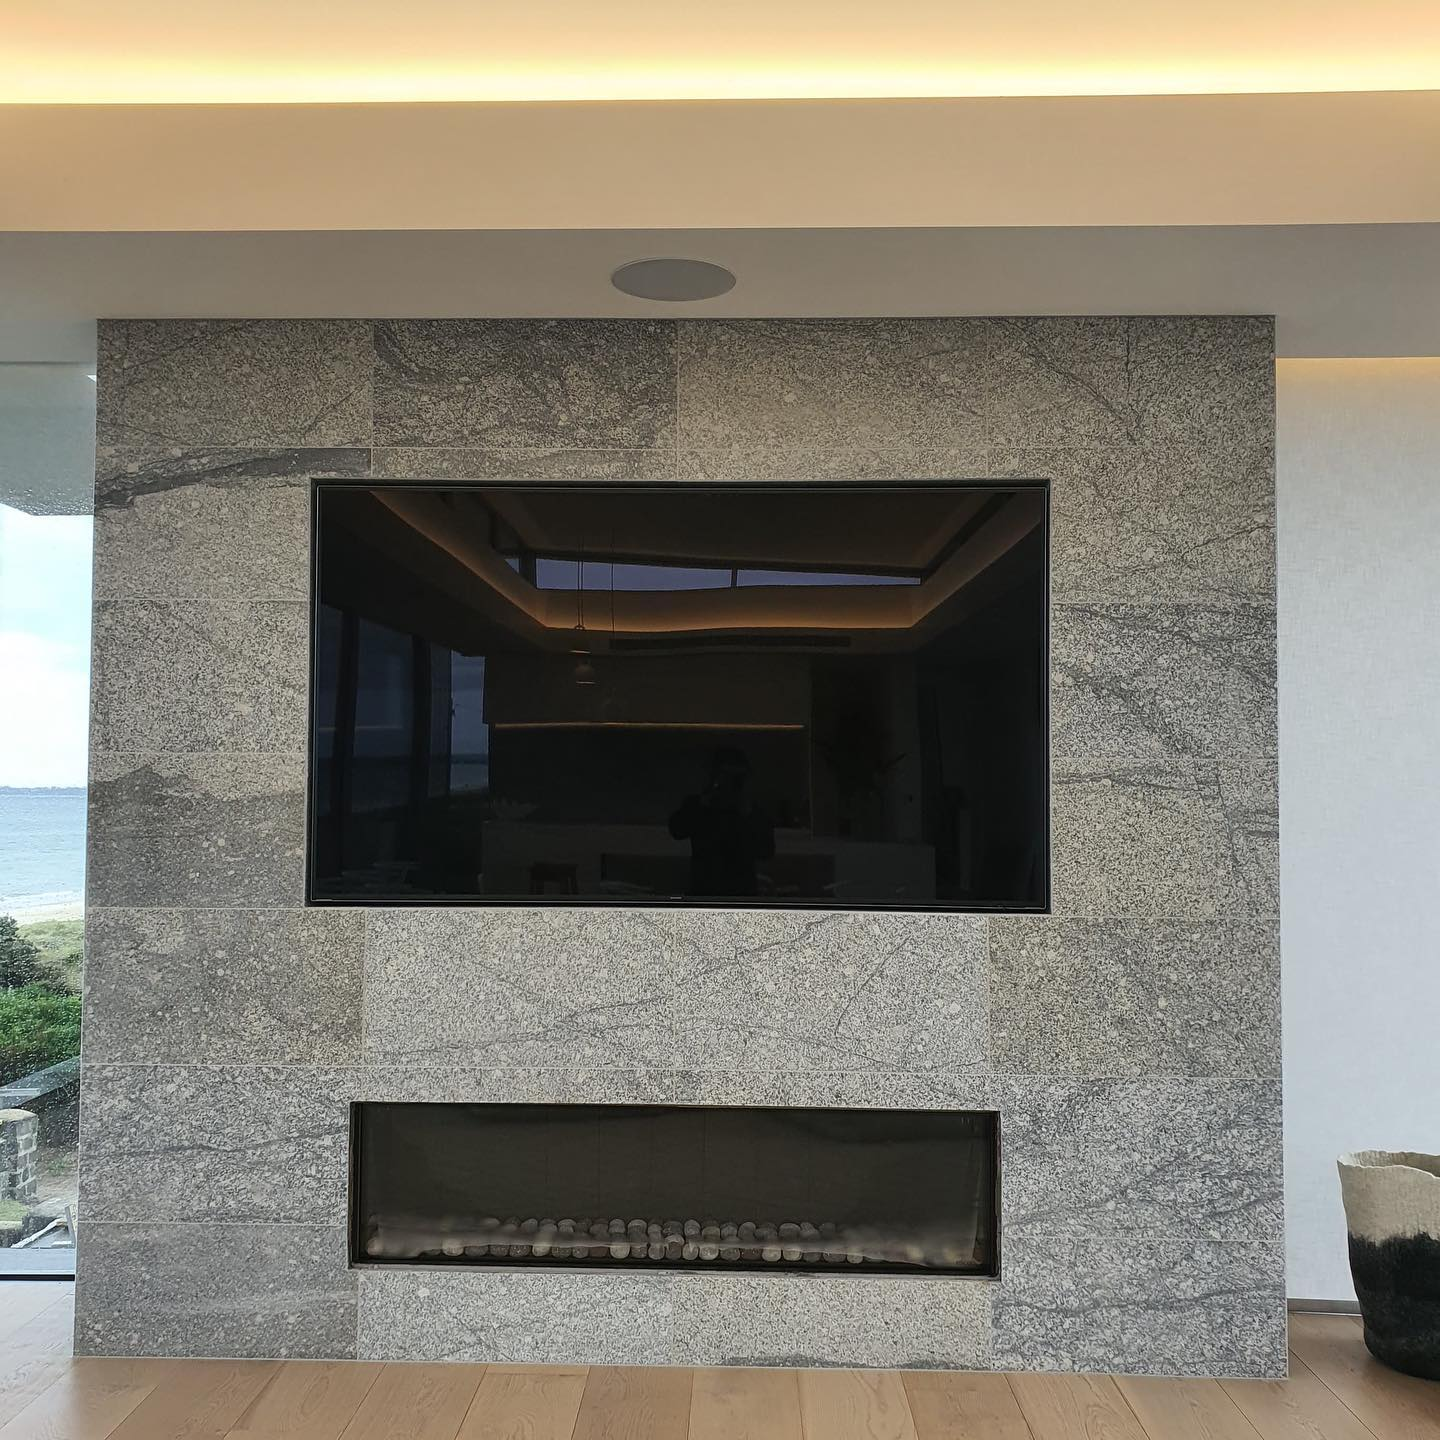 Luxury Gas Fireplace Design - With Beach View